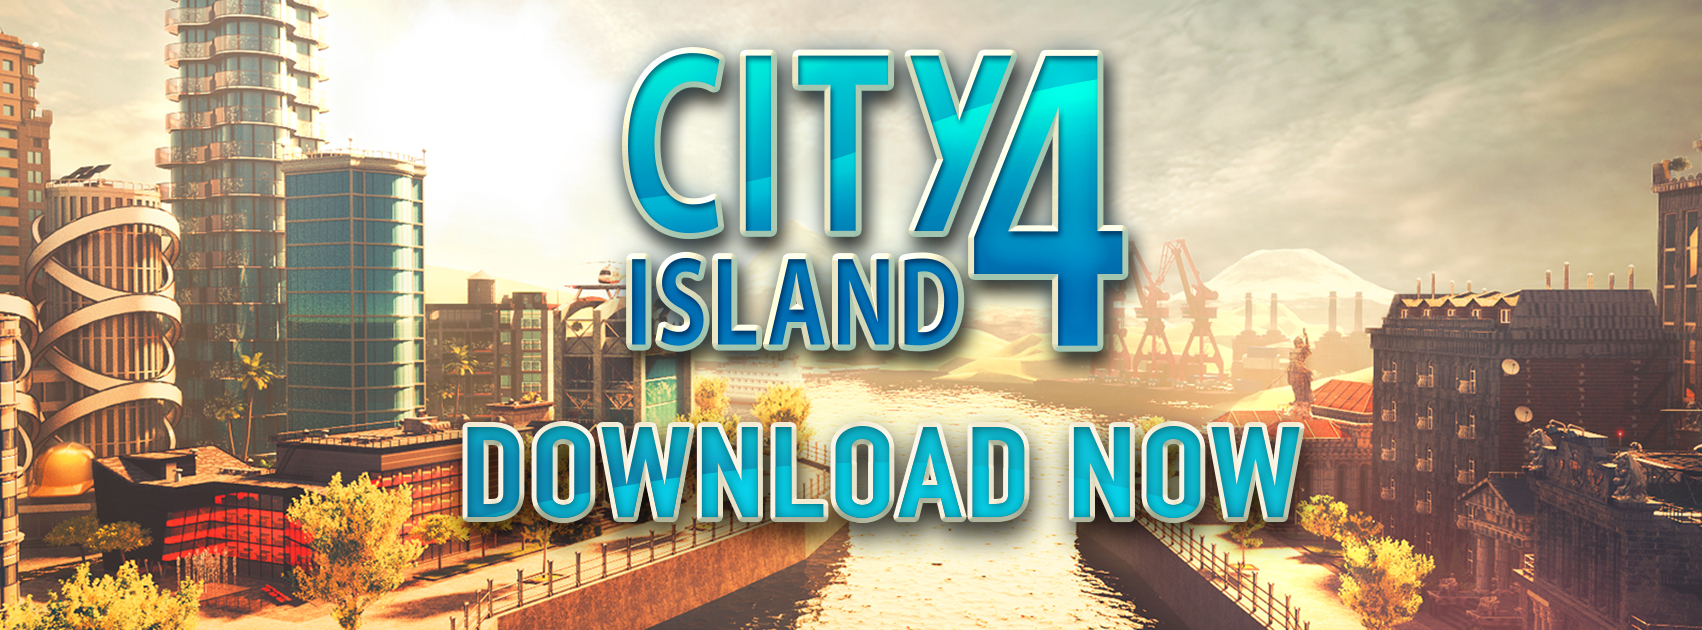 facebook cig4 download now cover